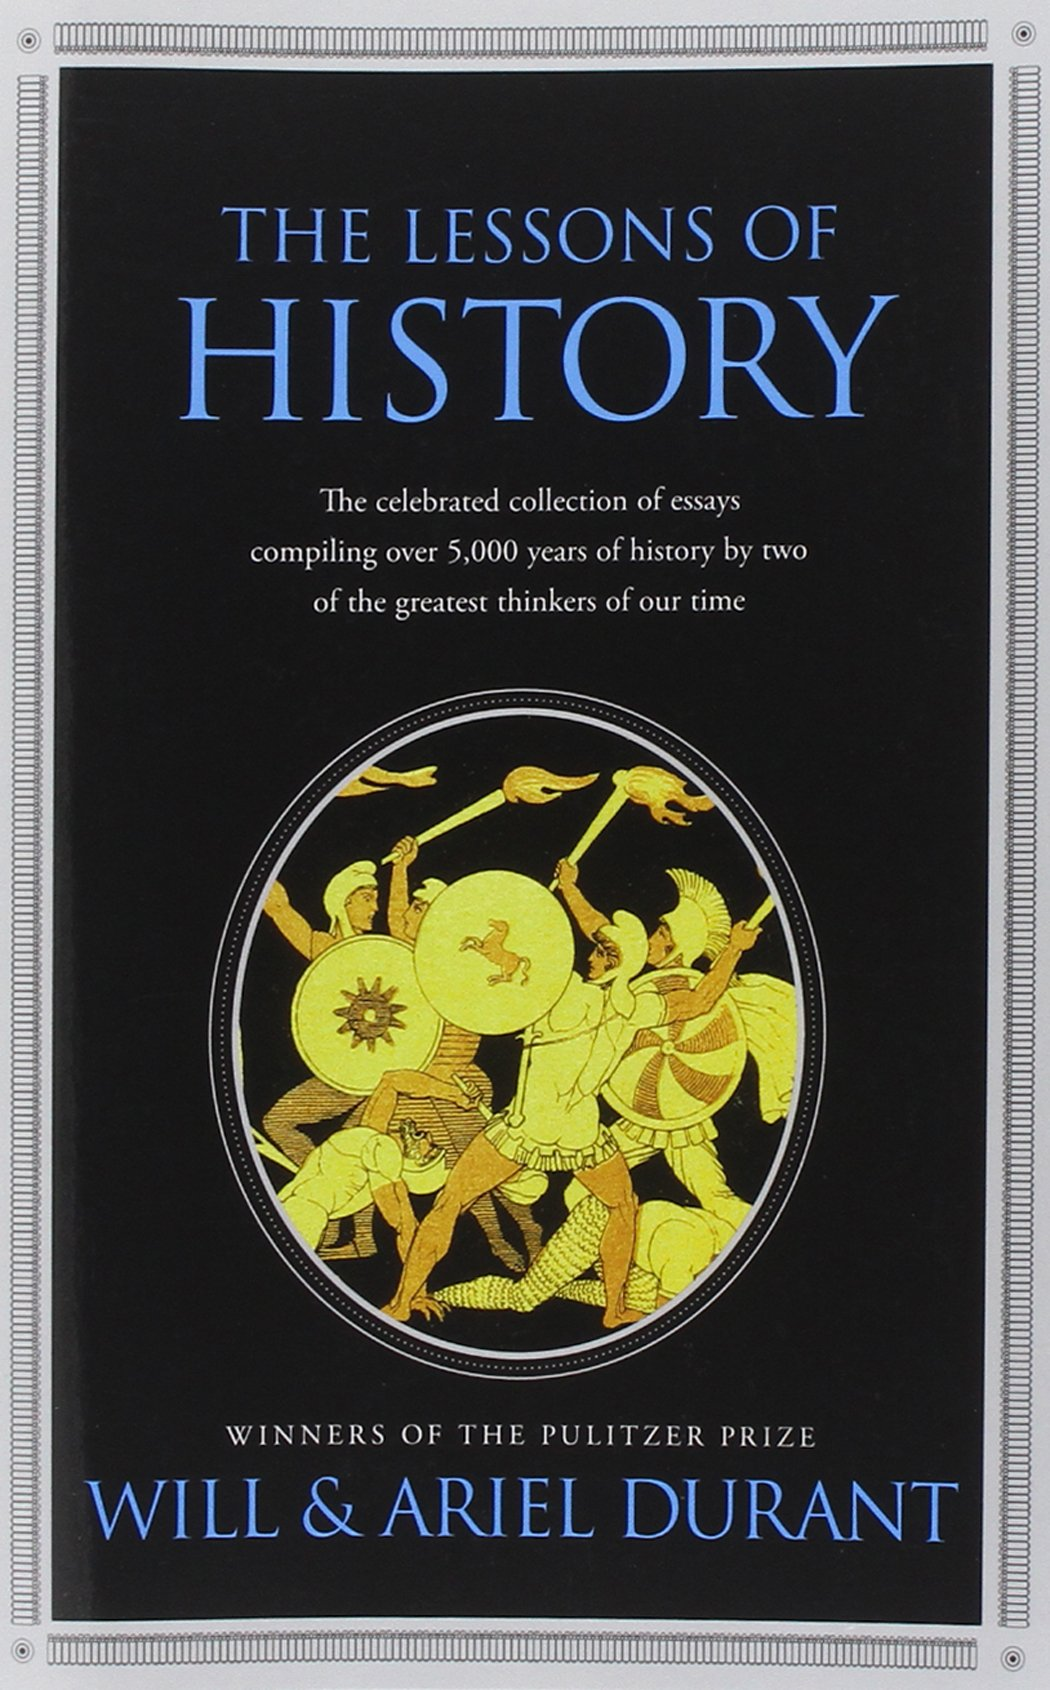 heroes of ancient times essay Free essay: while have at thee the arthurian battle cry from monty python's search for the holy grail, is a far a-hem cry from the modern day many aspects of culture have been wholly altered, but society's quest for a hero has remained each people of the ancient times had a matchless idol that.